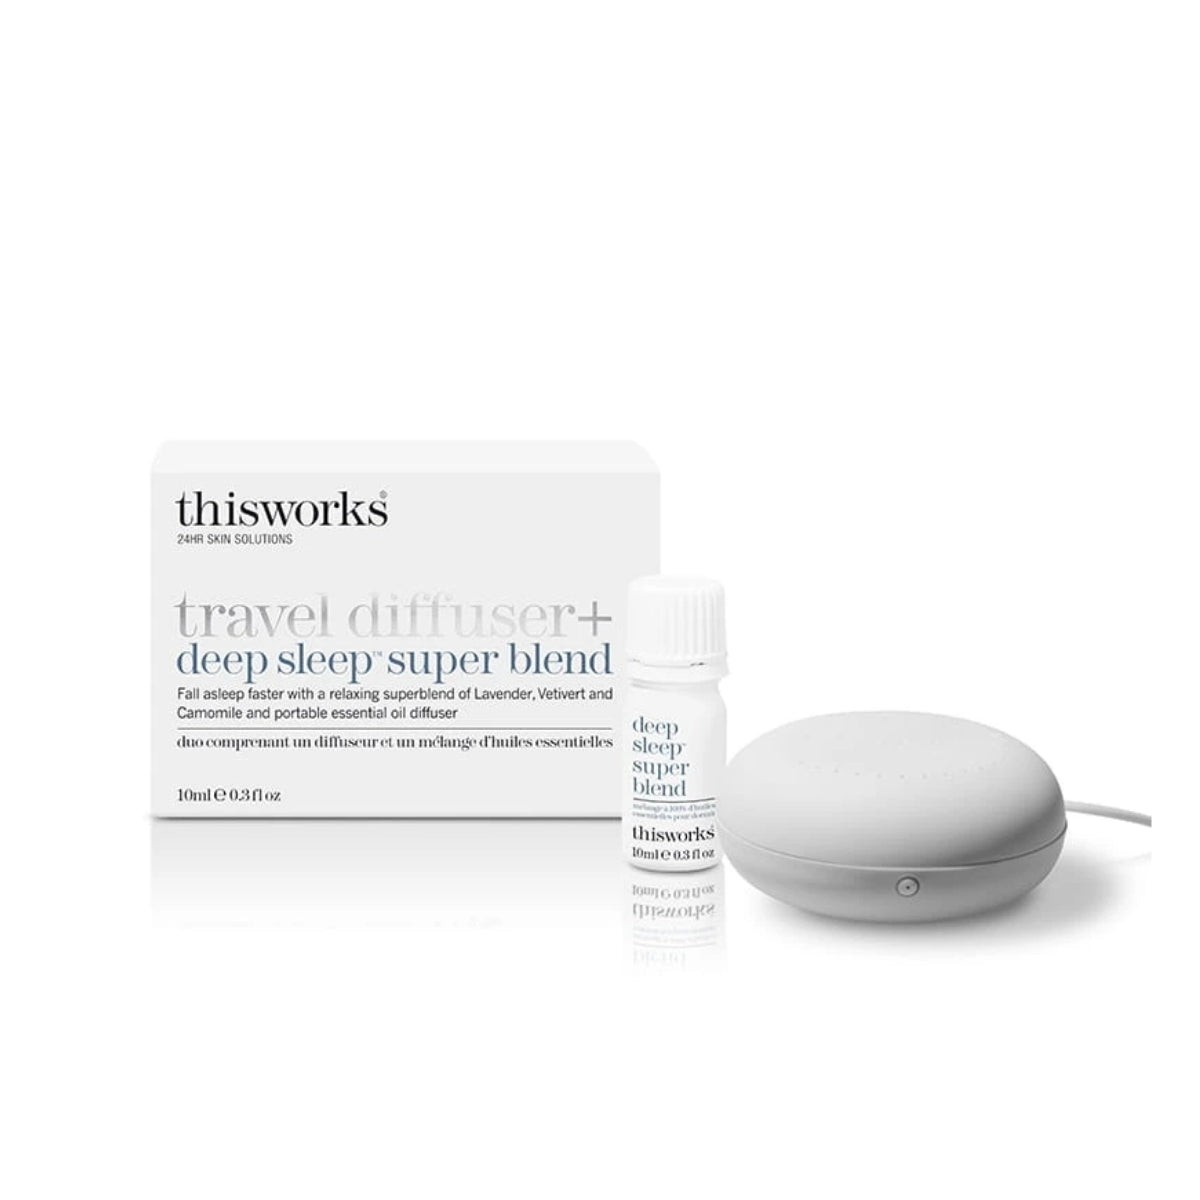 thisworks Travel Diffuser + Deep Sleep Super Blend 10ml